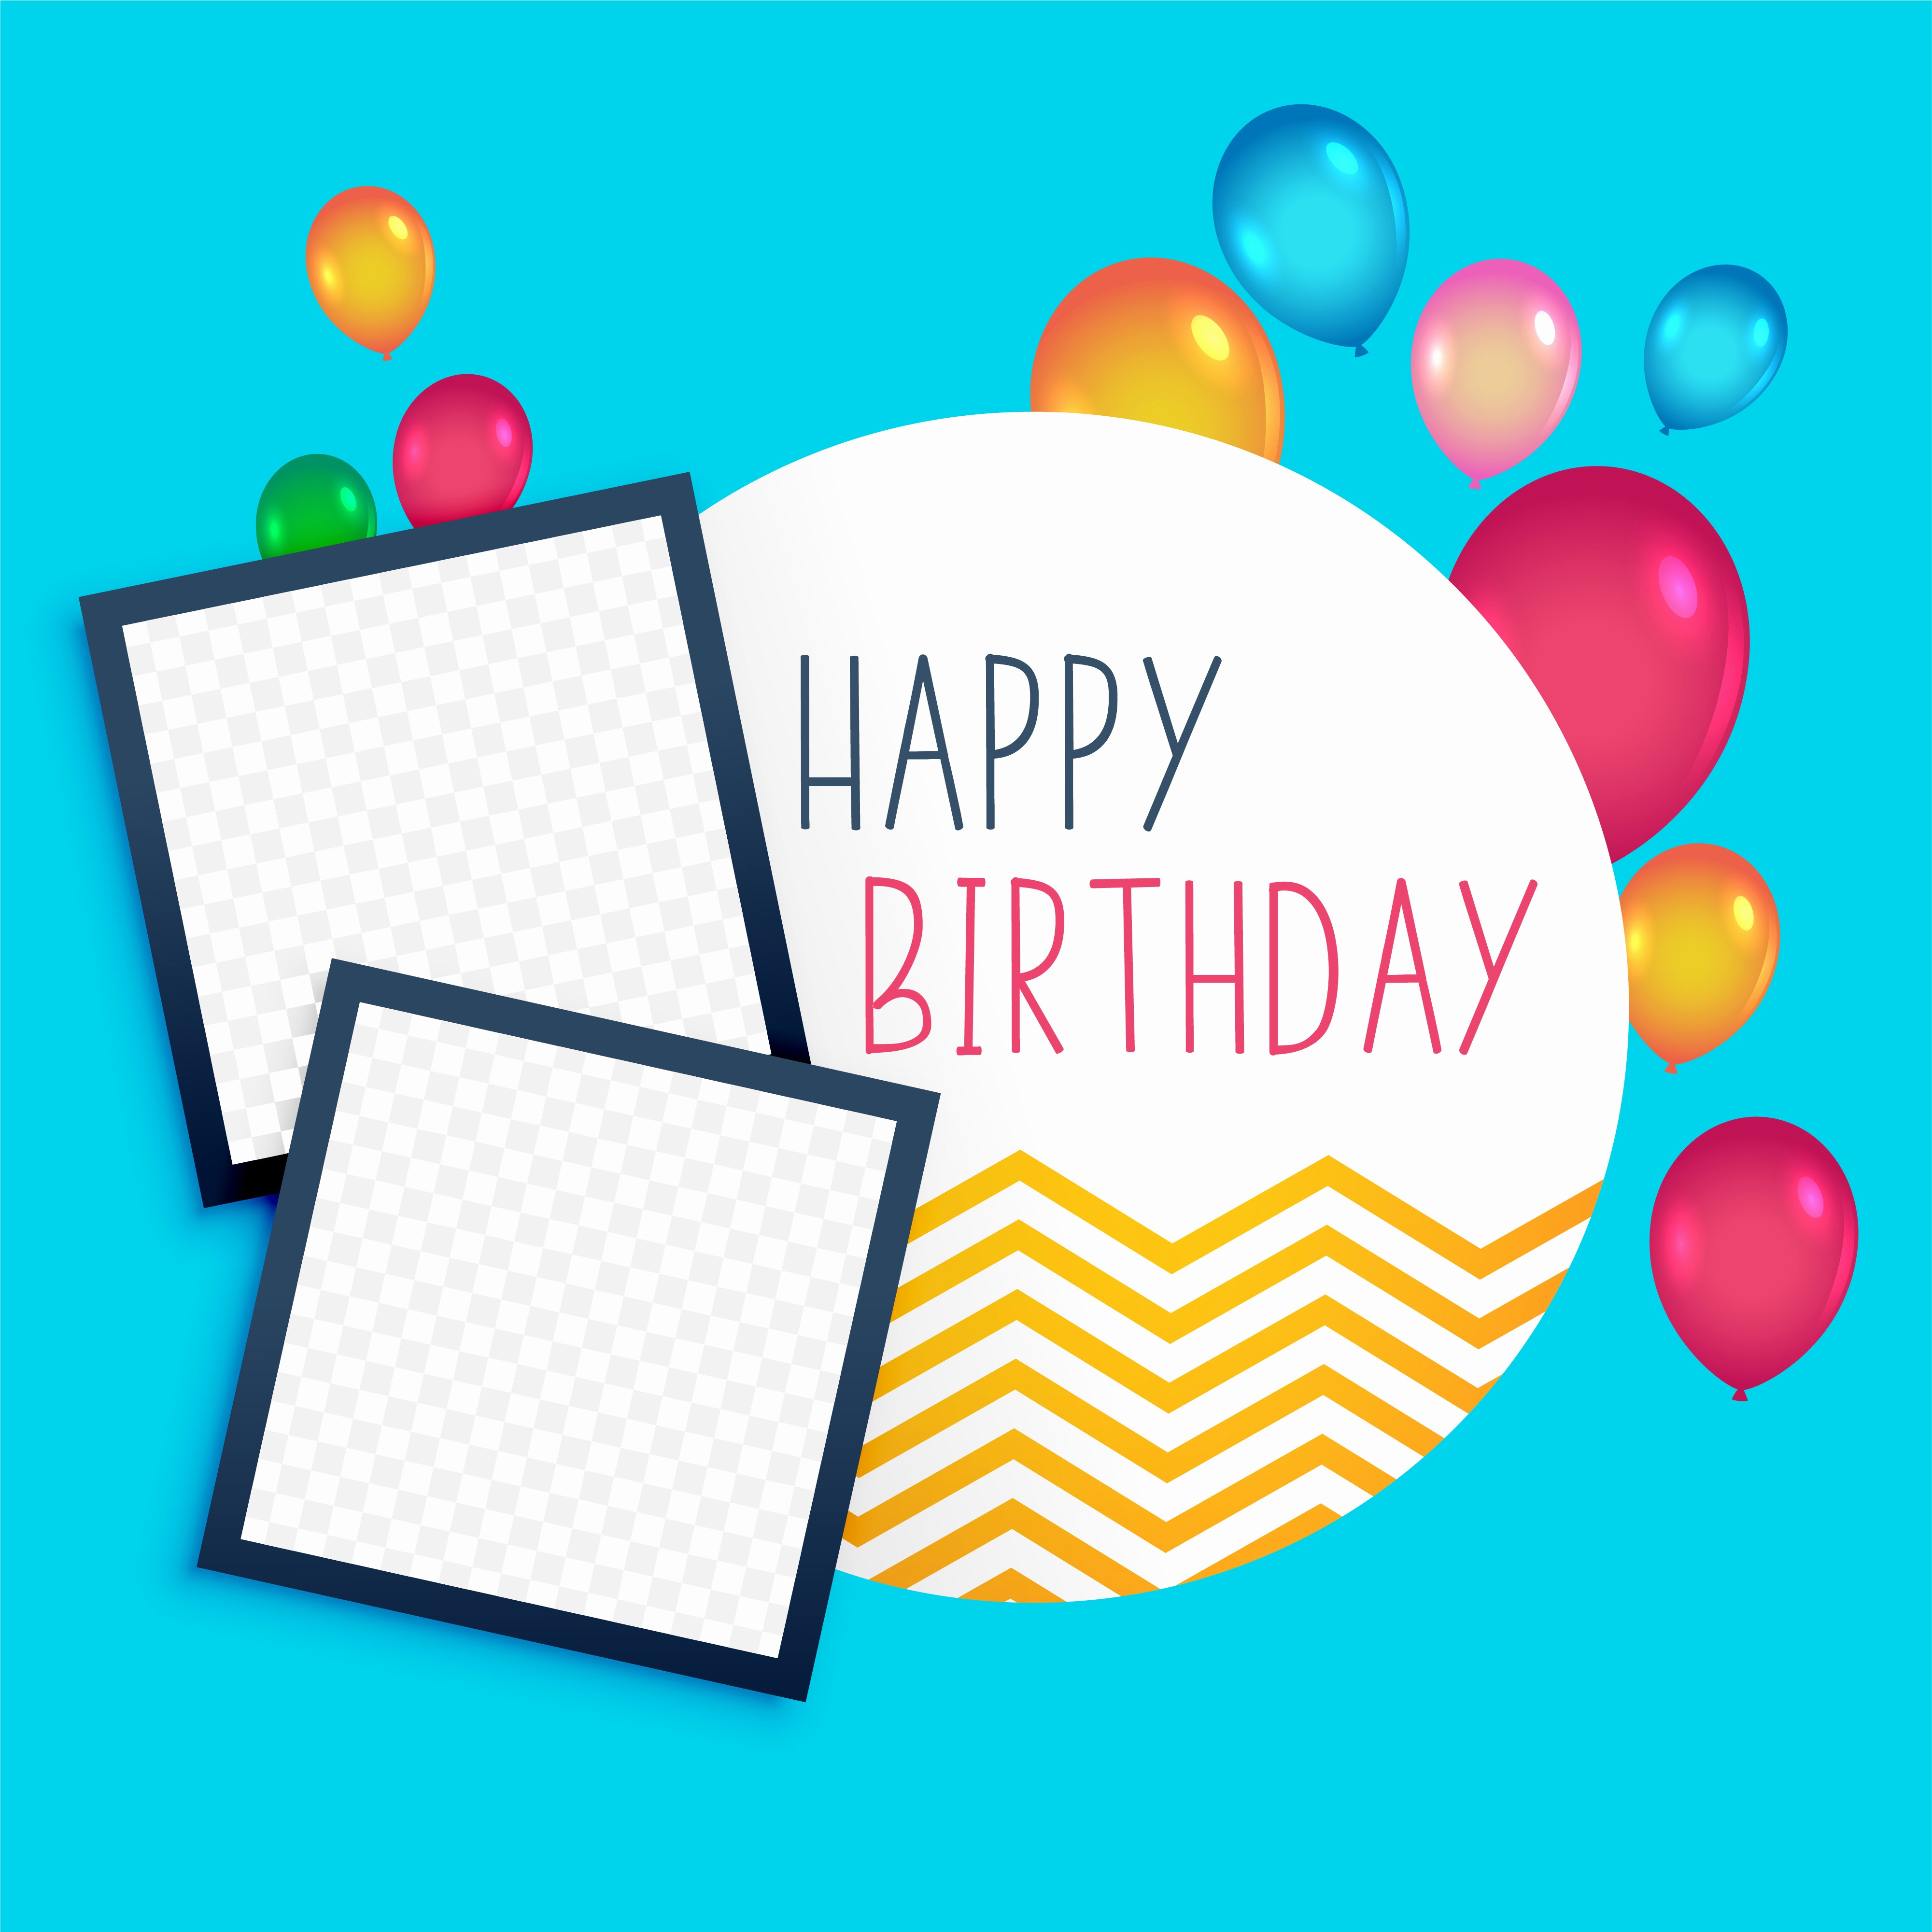 Birthday Card Template with Photo Awesome Happy Birthday Template with Photo Frame Download Free